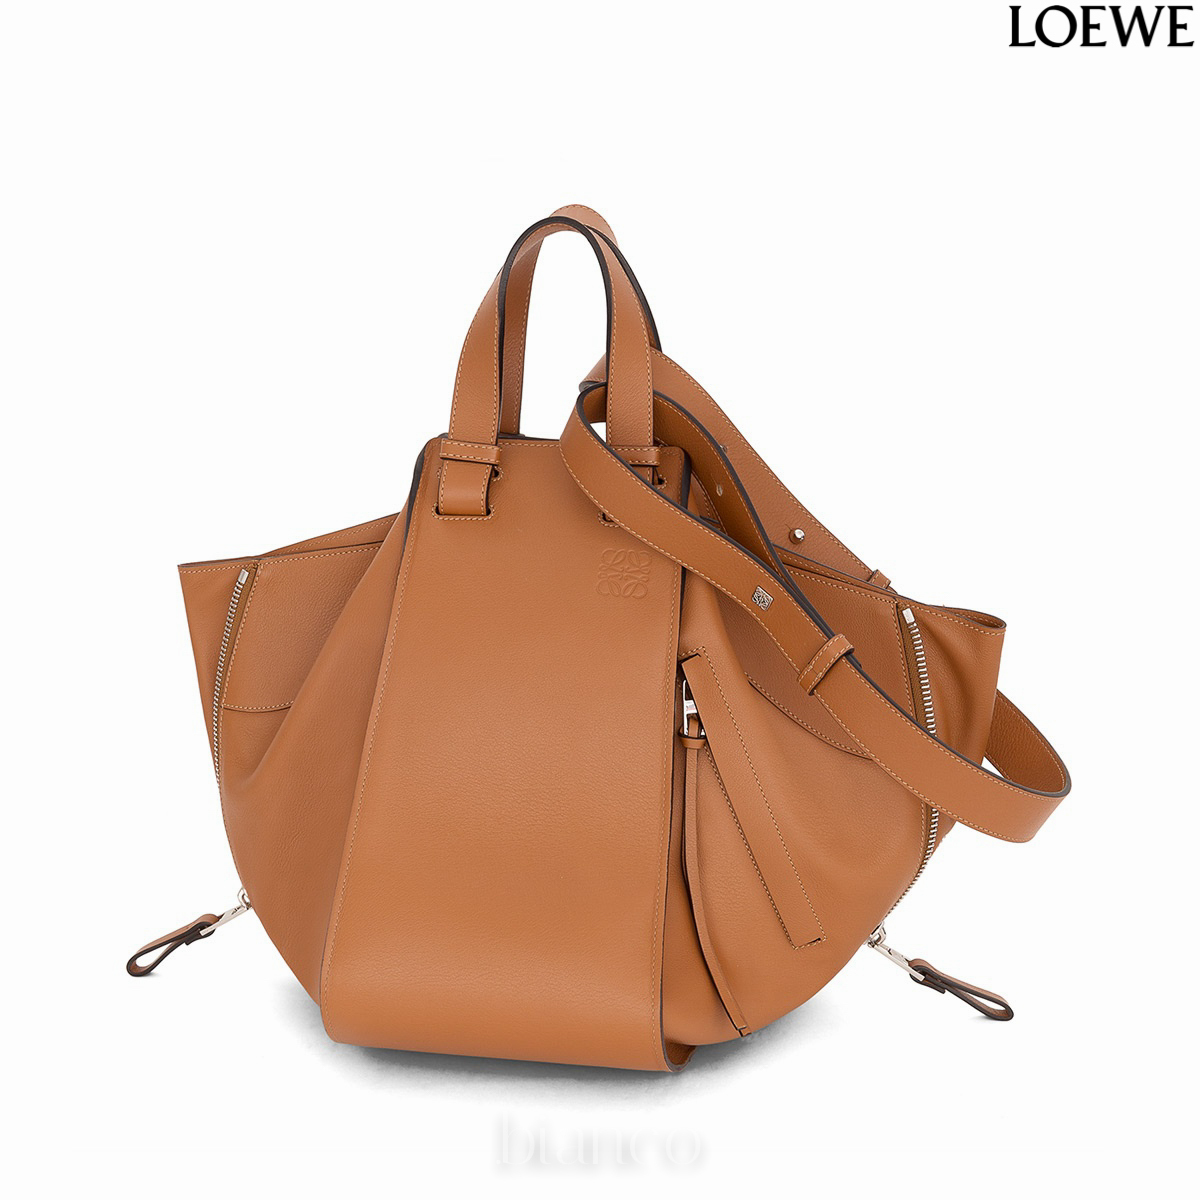 Tom Ford Bag 2017 2018 Best Cars Reviews